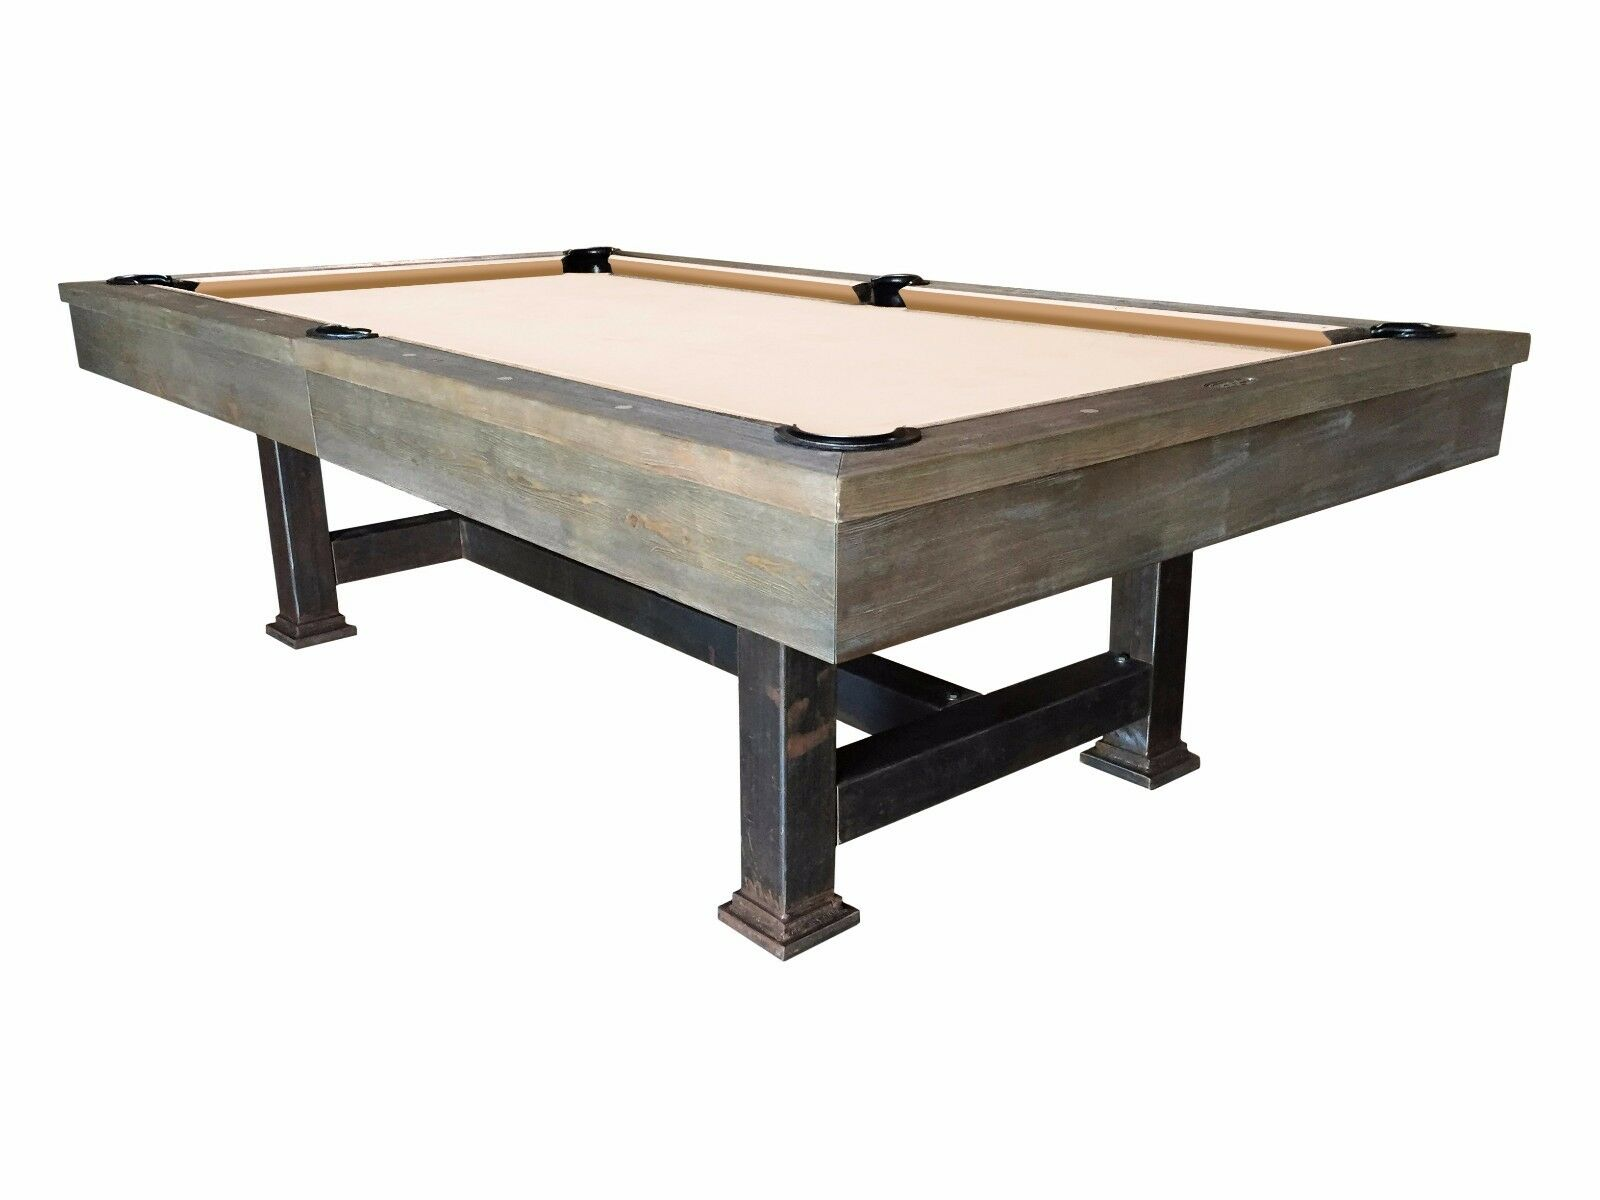 The Bodie - 8' Weathered Oak Slate Pool Table with Antiqued Steel Legs